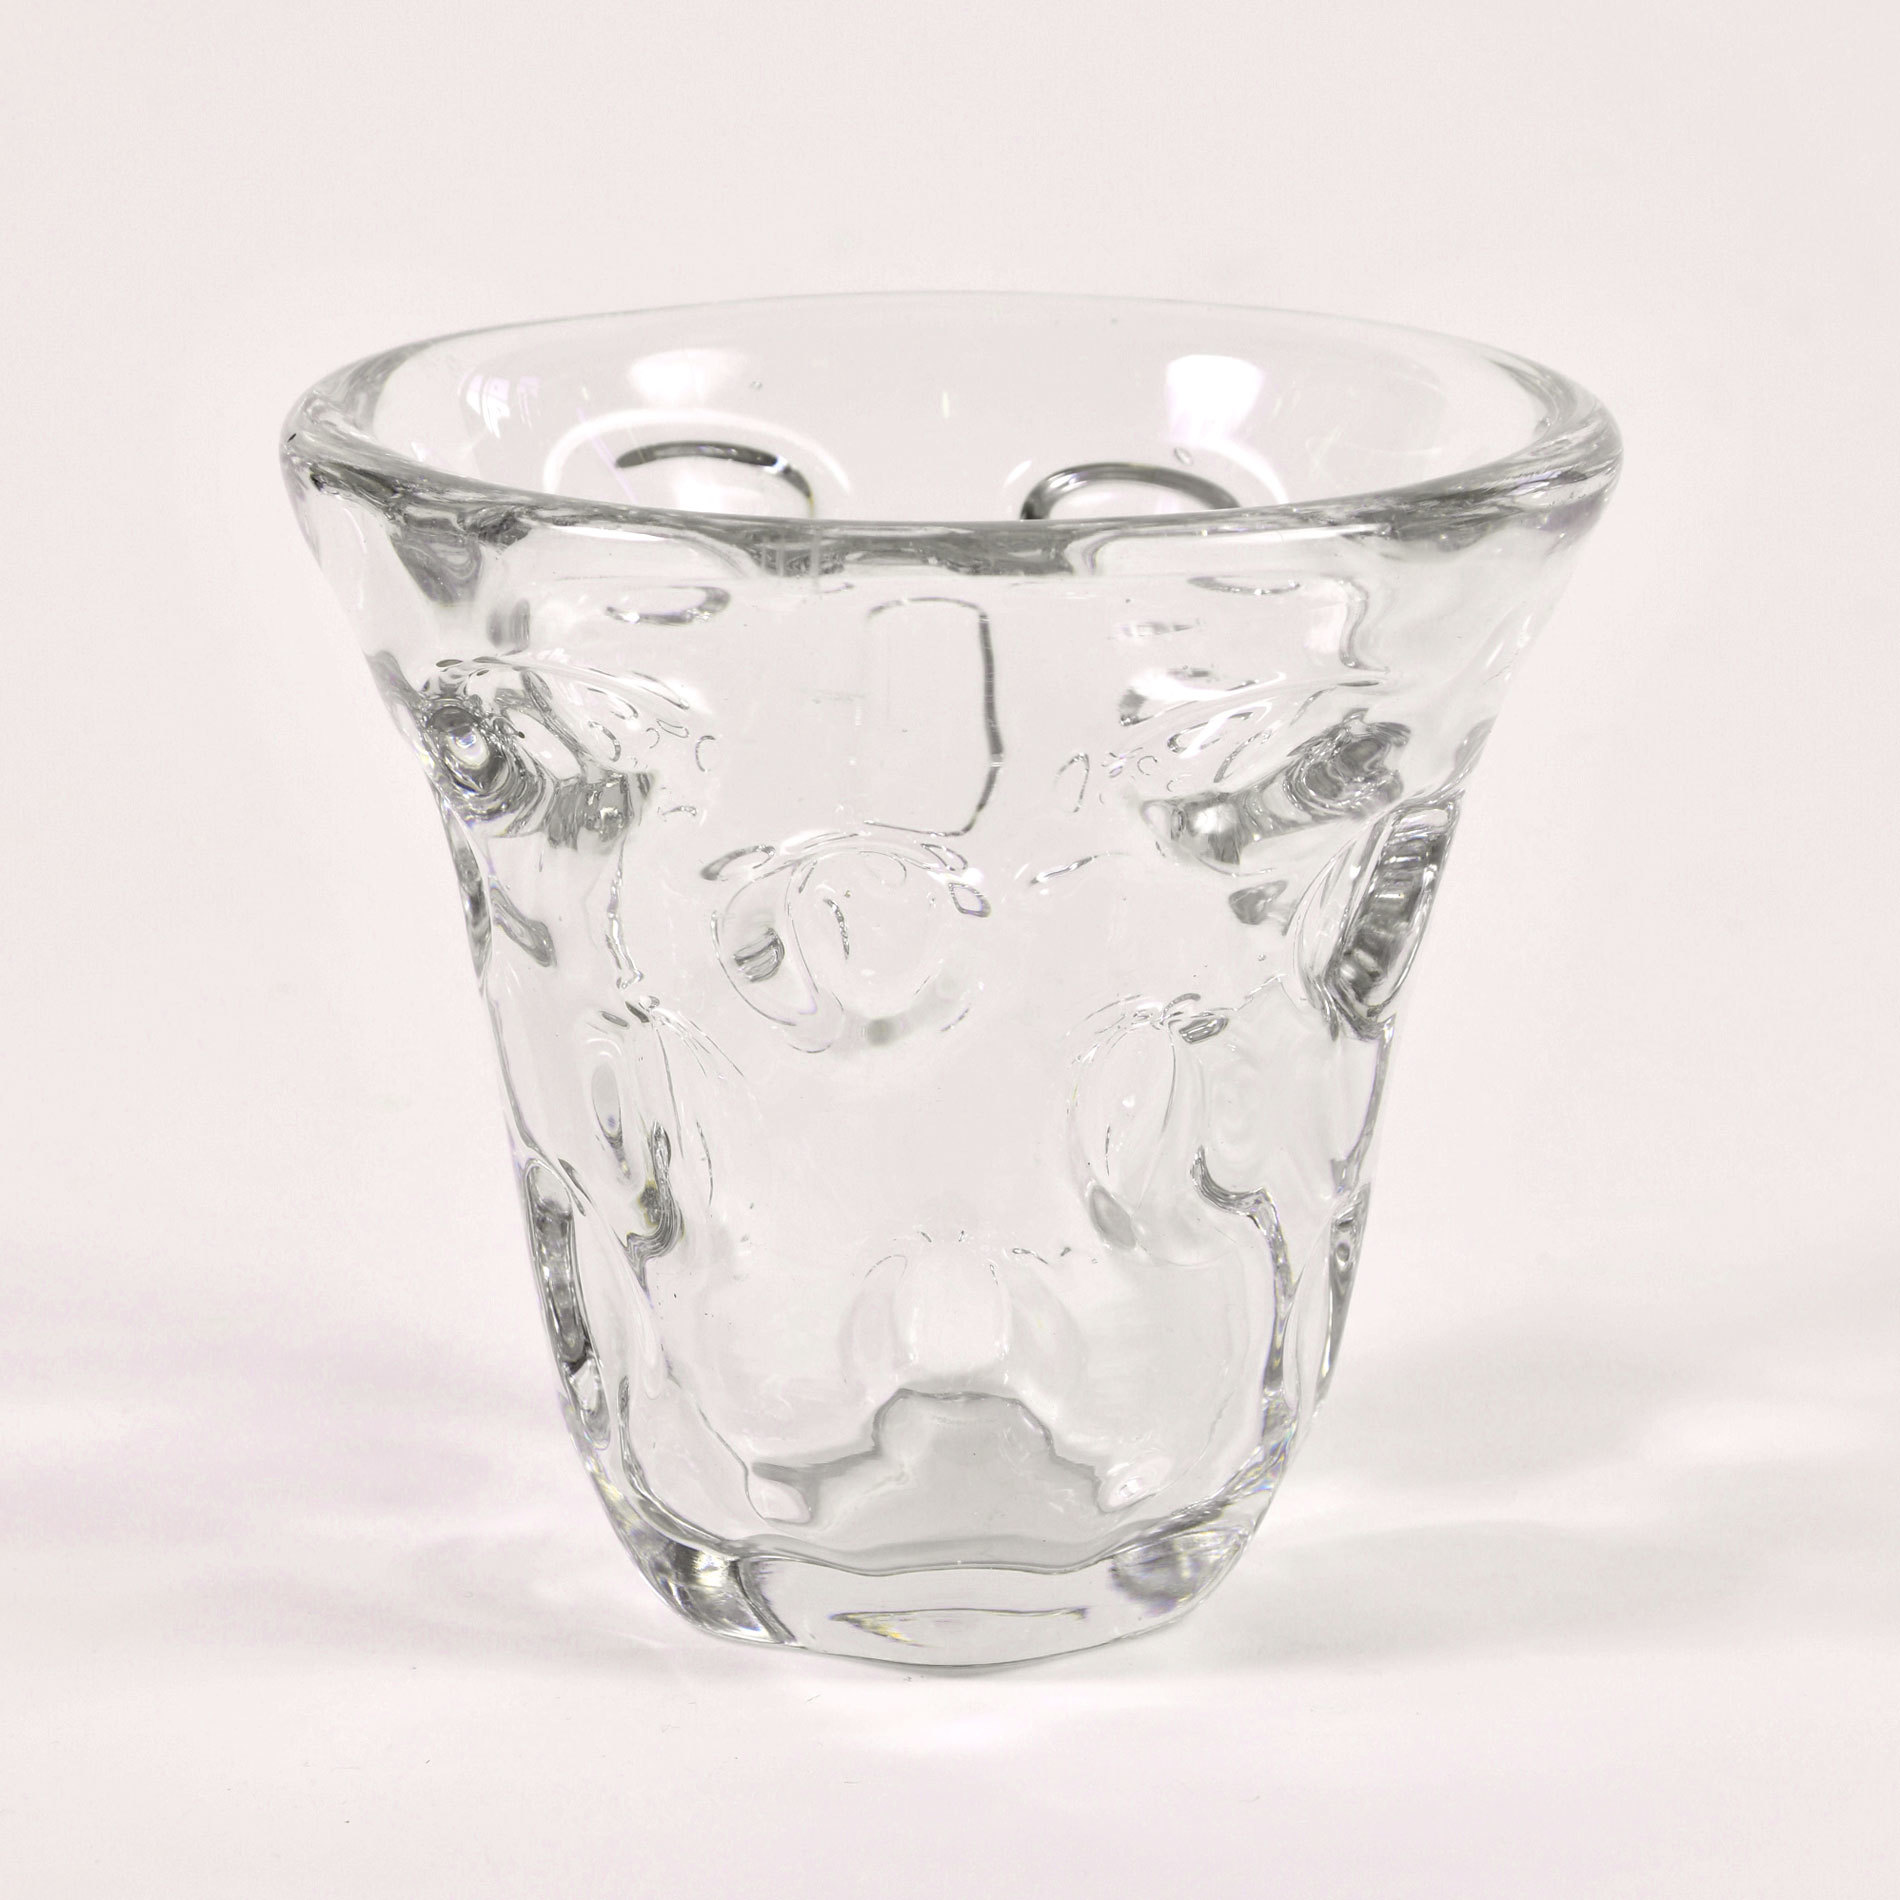 The image for Schneider Bubble Vase 01